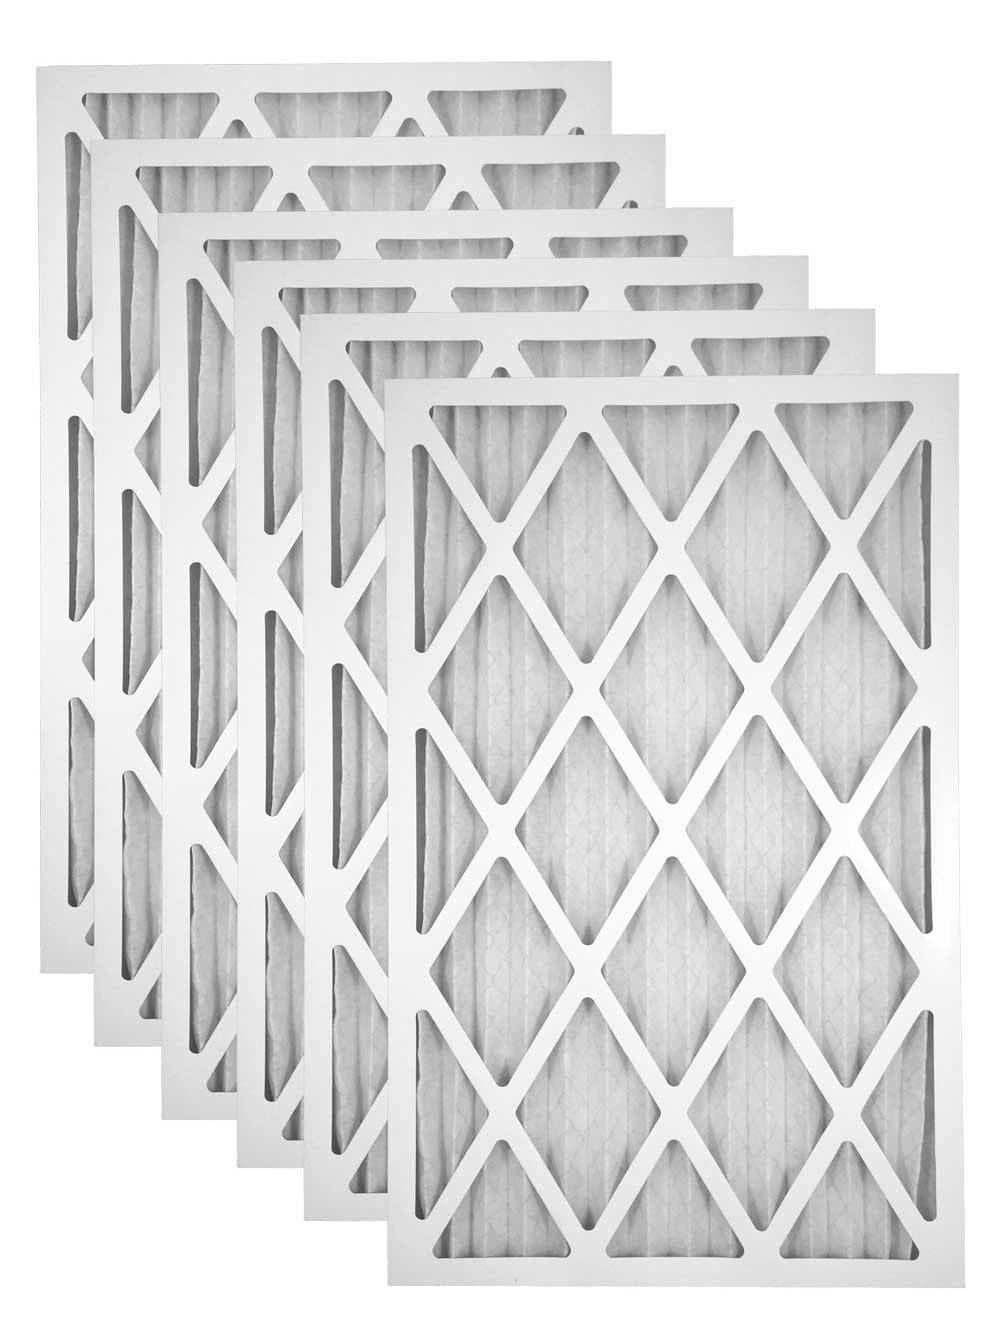 24x24x1 Merv 11 Pleated AC Furnace Filter - Case of 6 by Atomic Filters